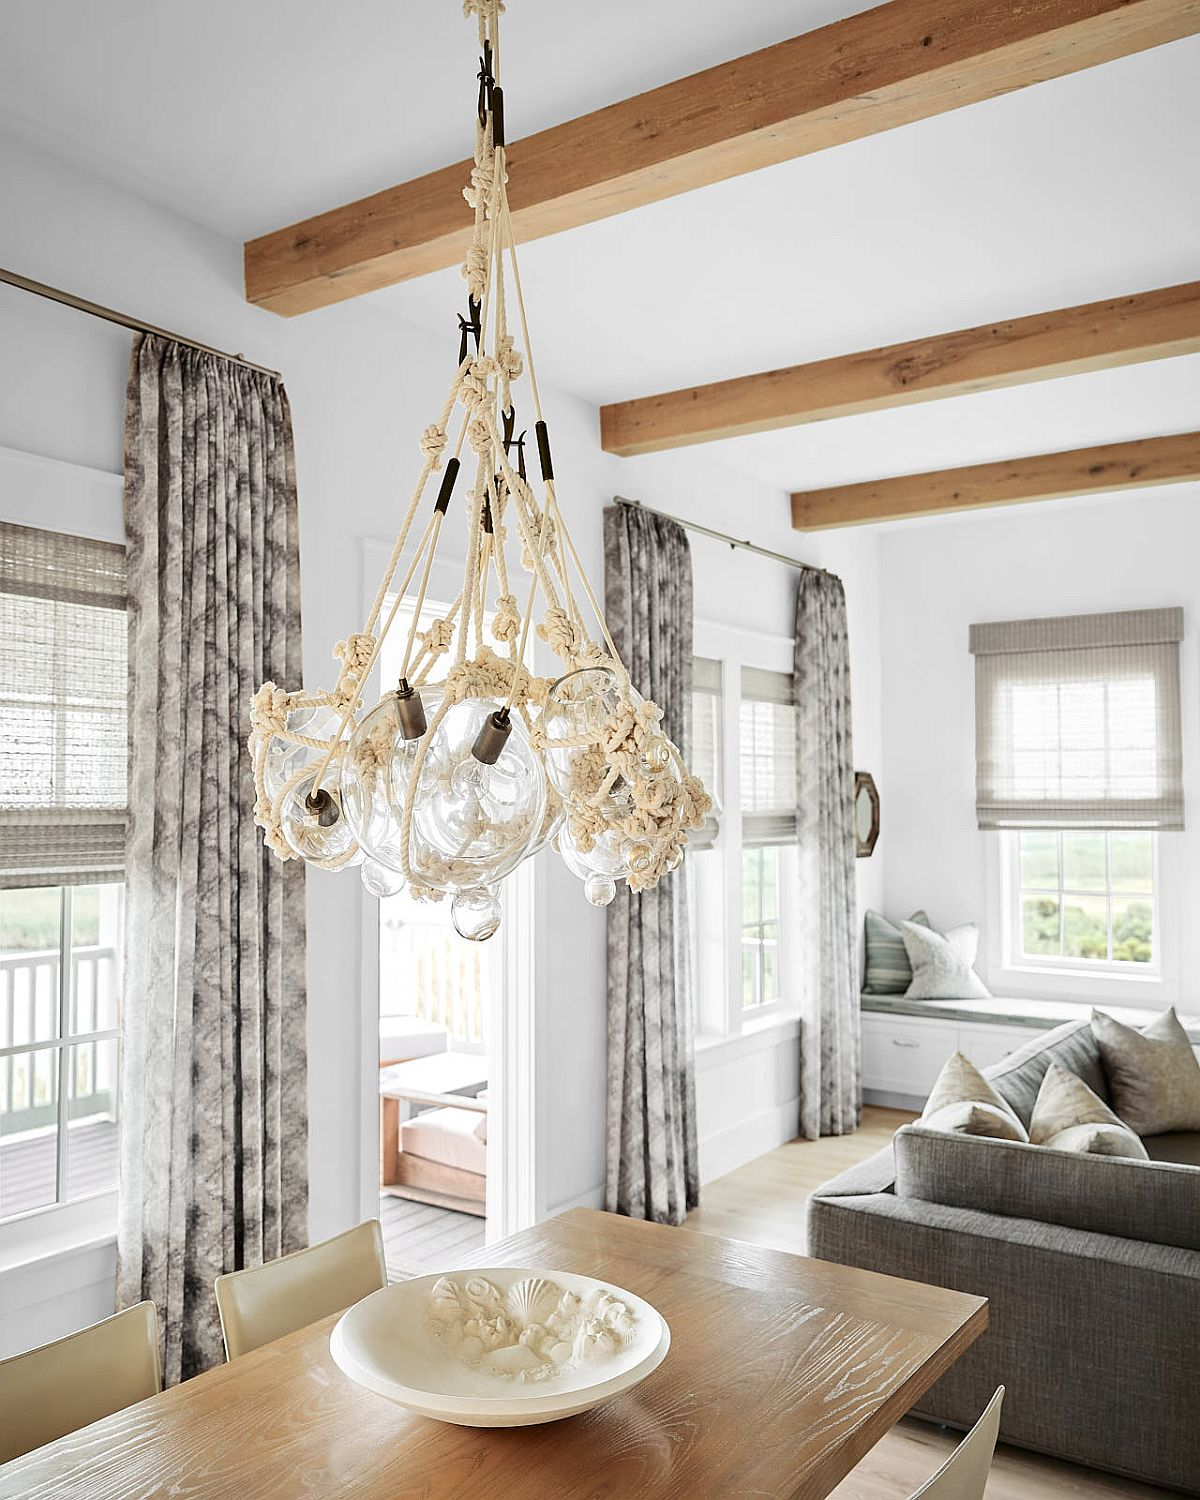 Lighting fixture in the dining room adds to the casual beach style of the home